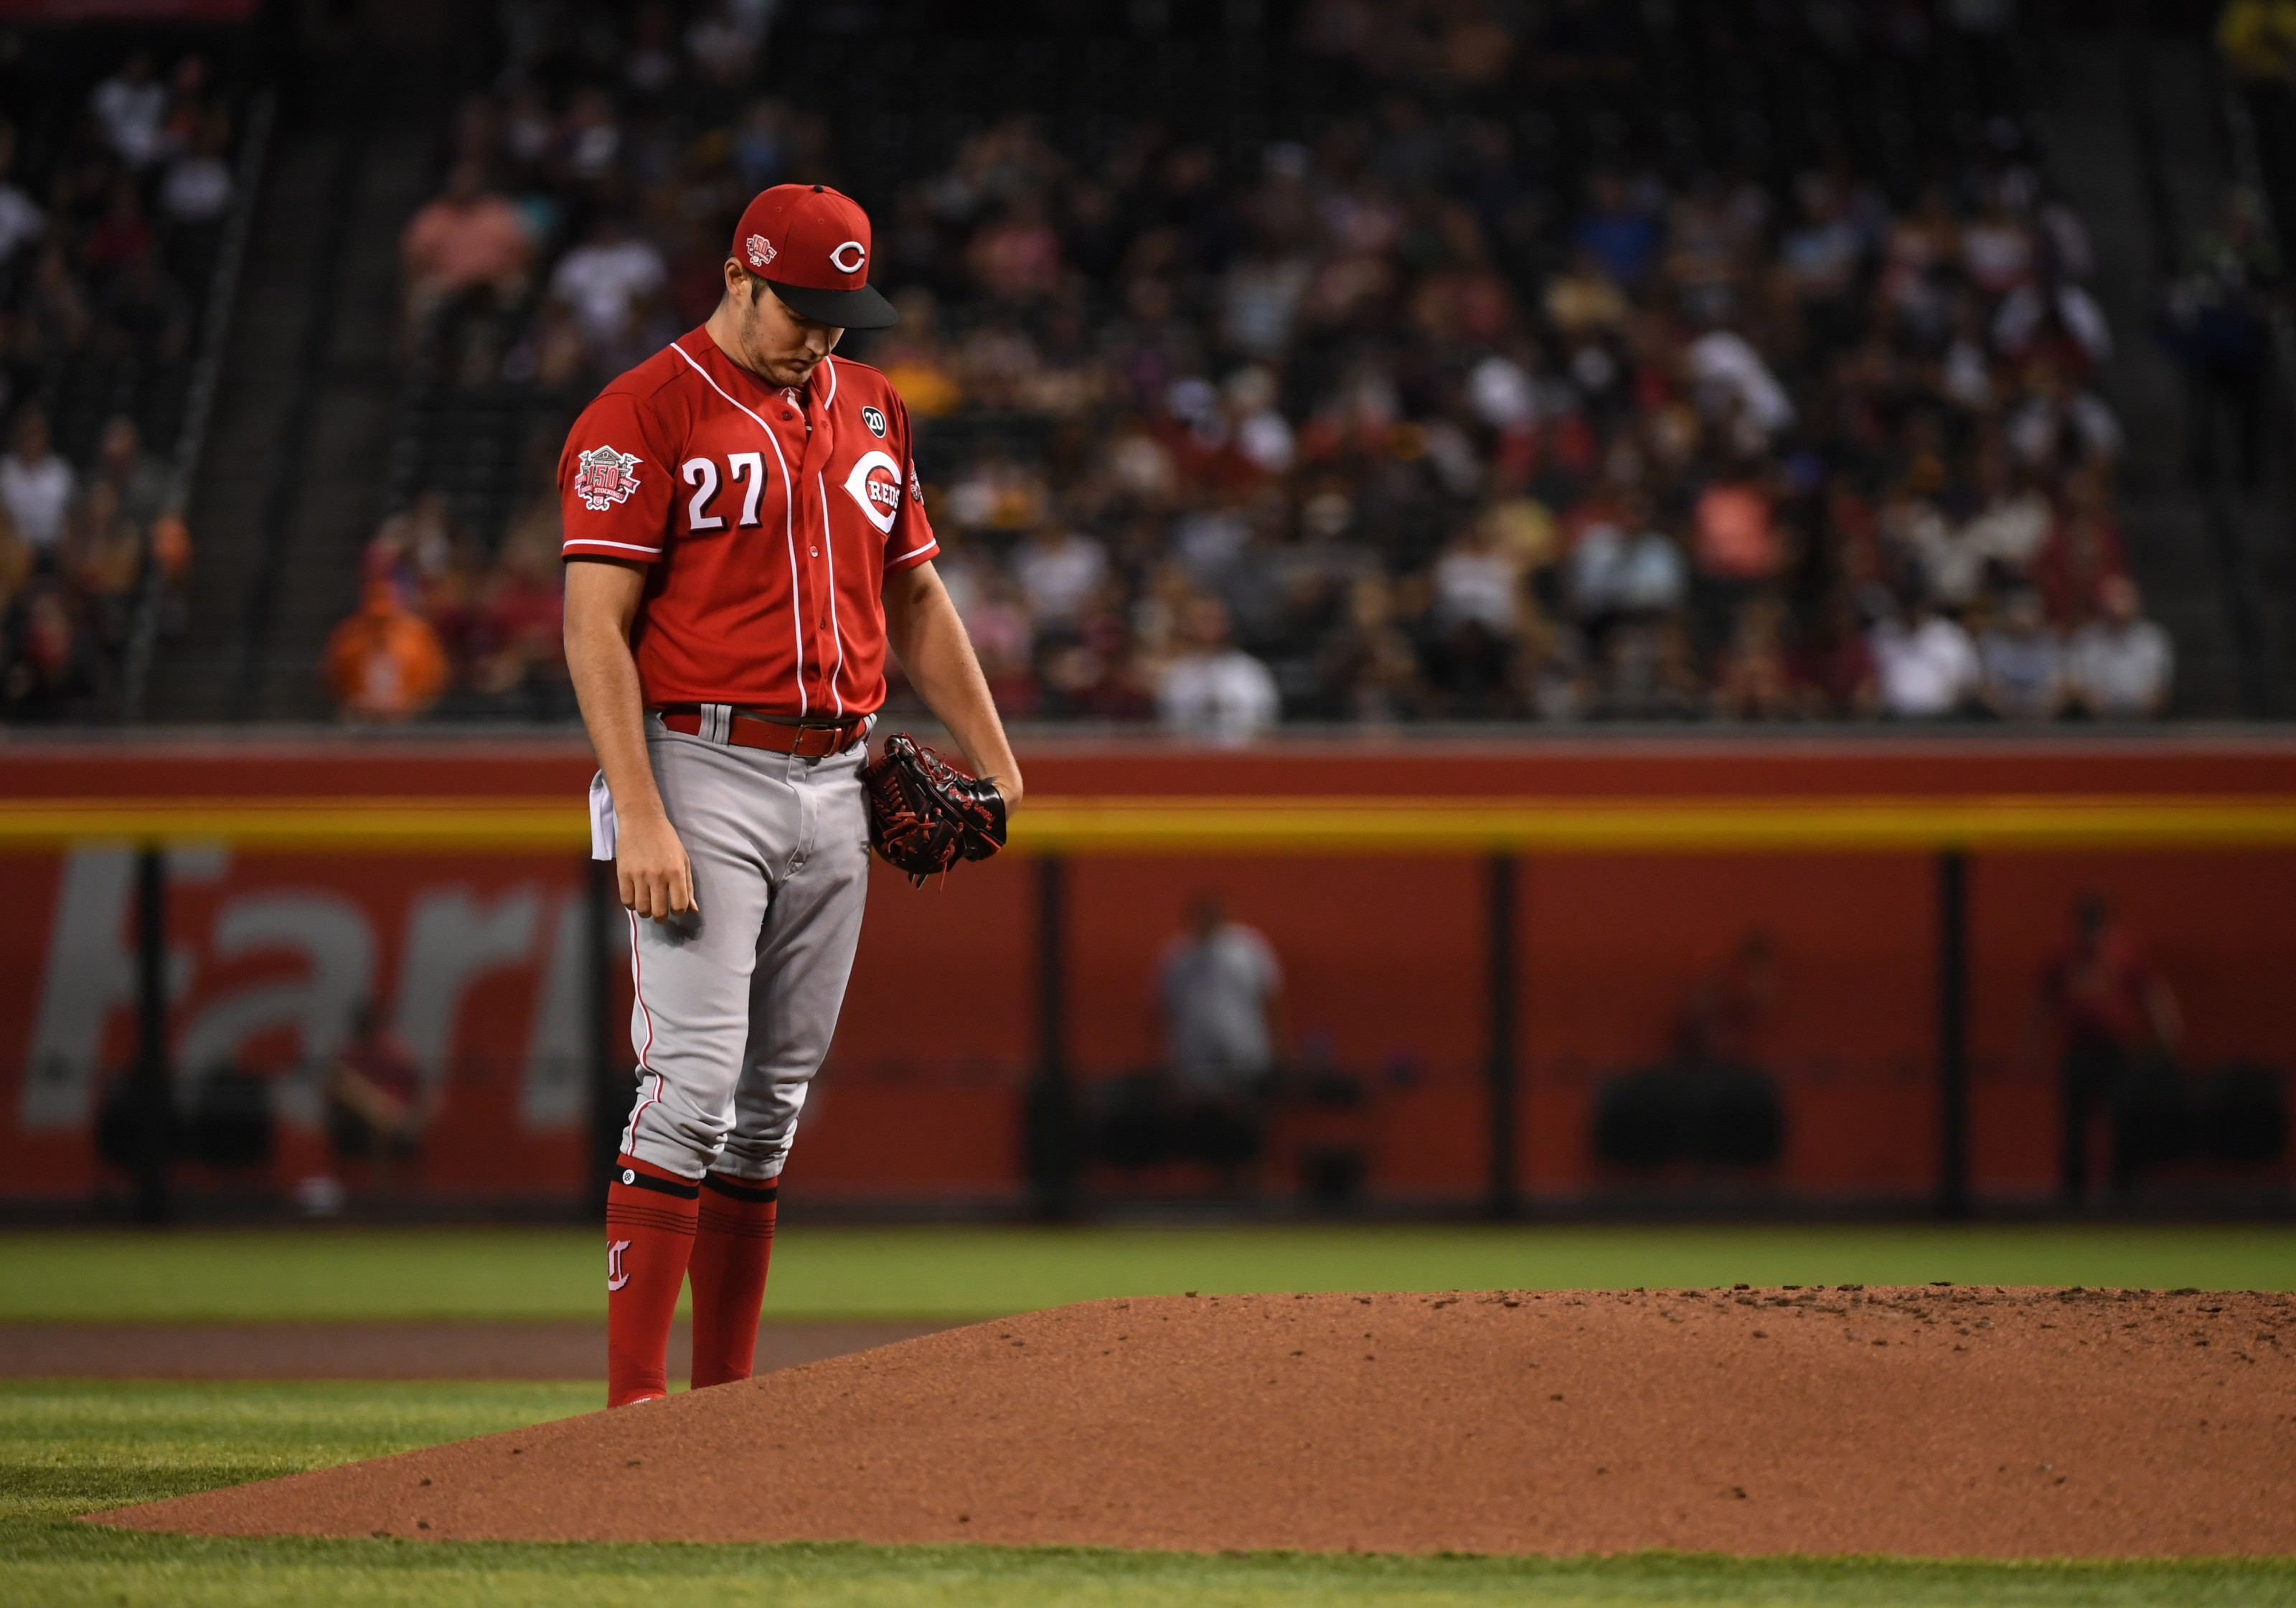 Los Angeles Angels: The potential trade market of top starting pitchers